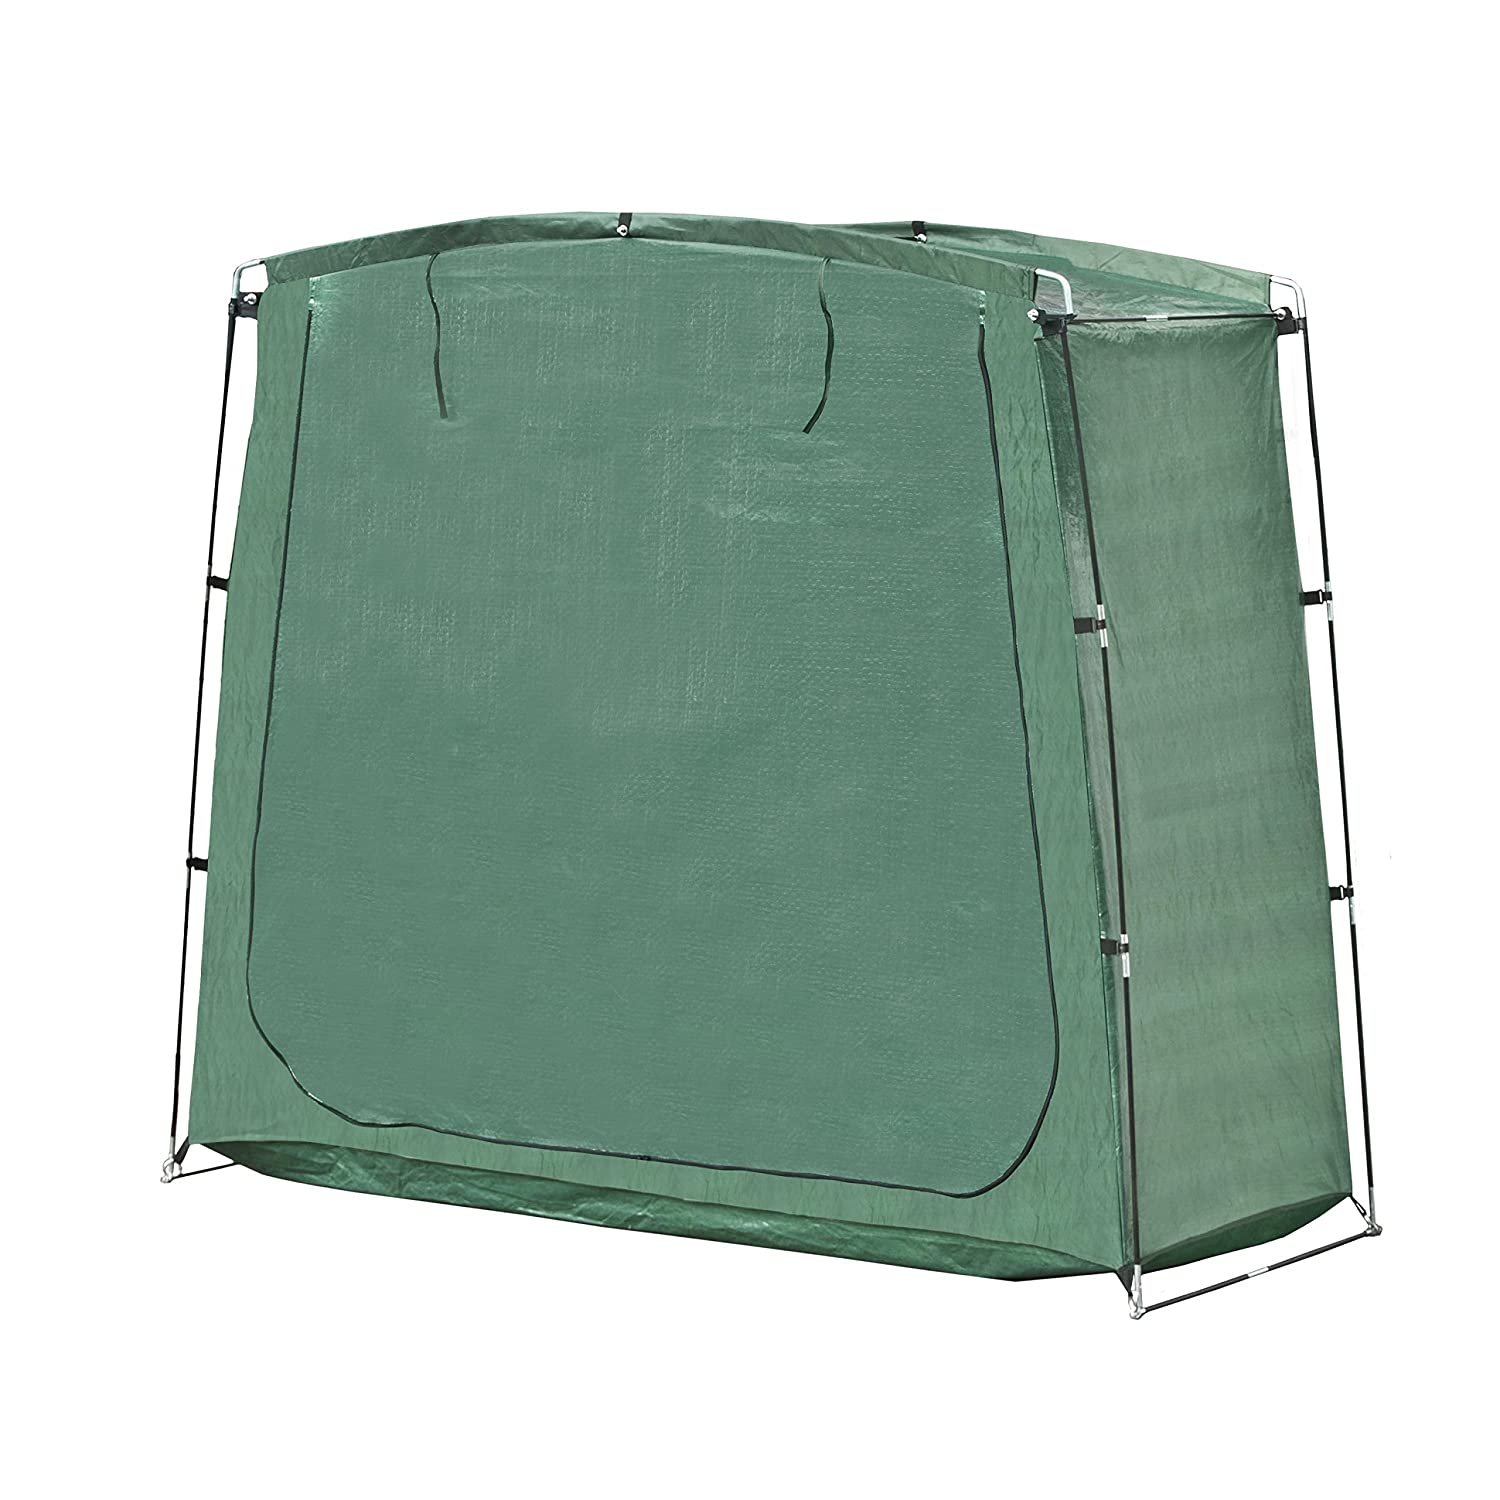 ALEKO® SS70GR PE 64 Inch Tall Rectangular Space Saving Outdoor Bike Storage Tent, Green Color